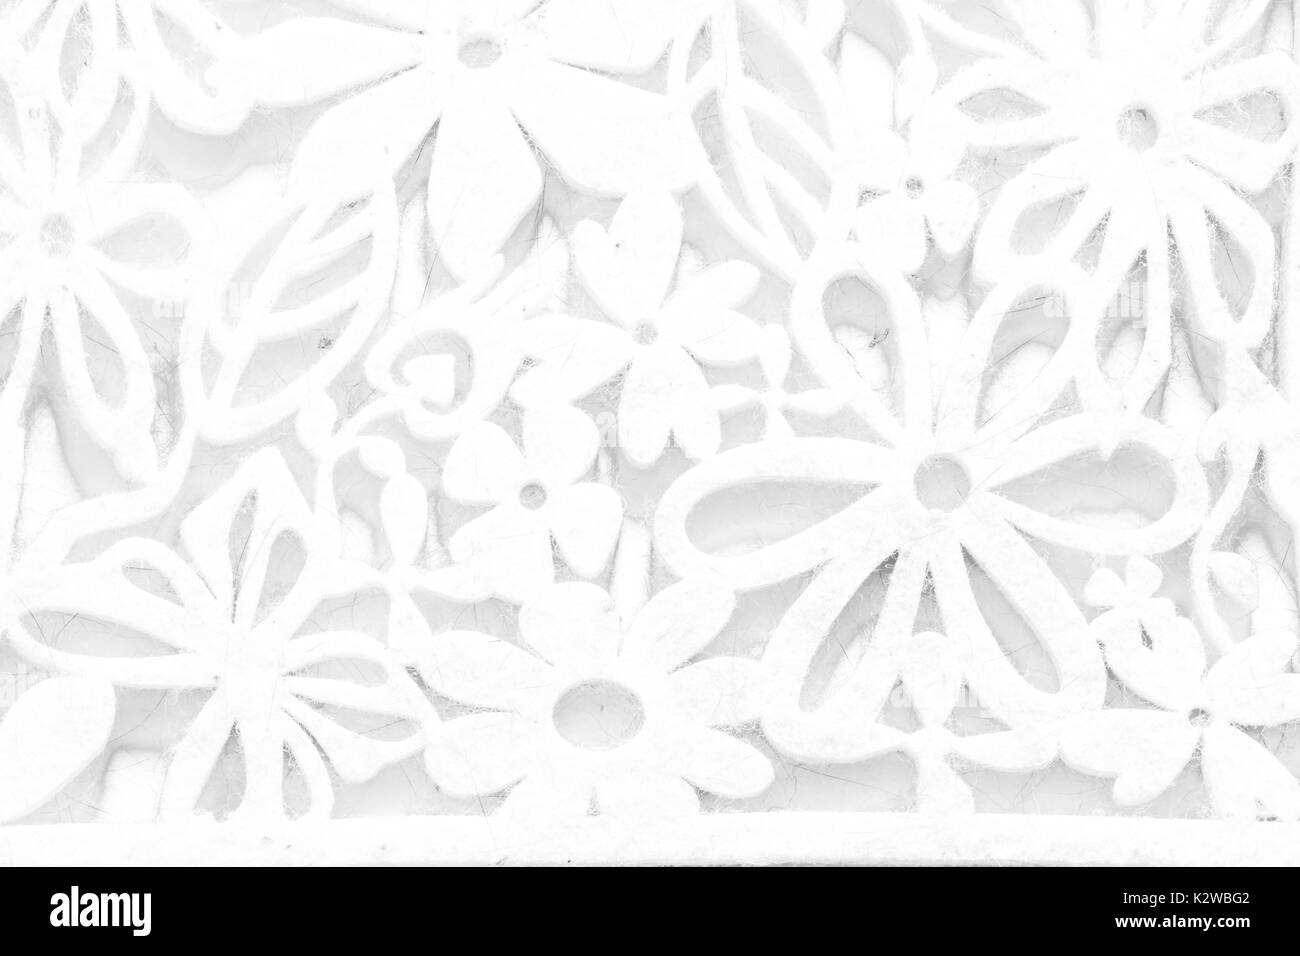 Woolen mat white texture with natural patterns can be used as background. - Stock Image